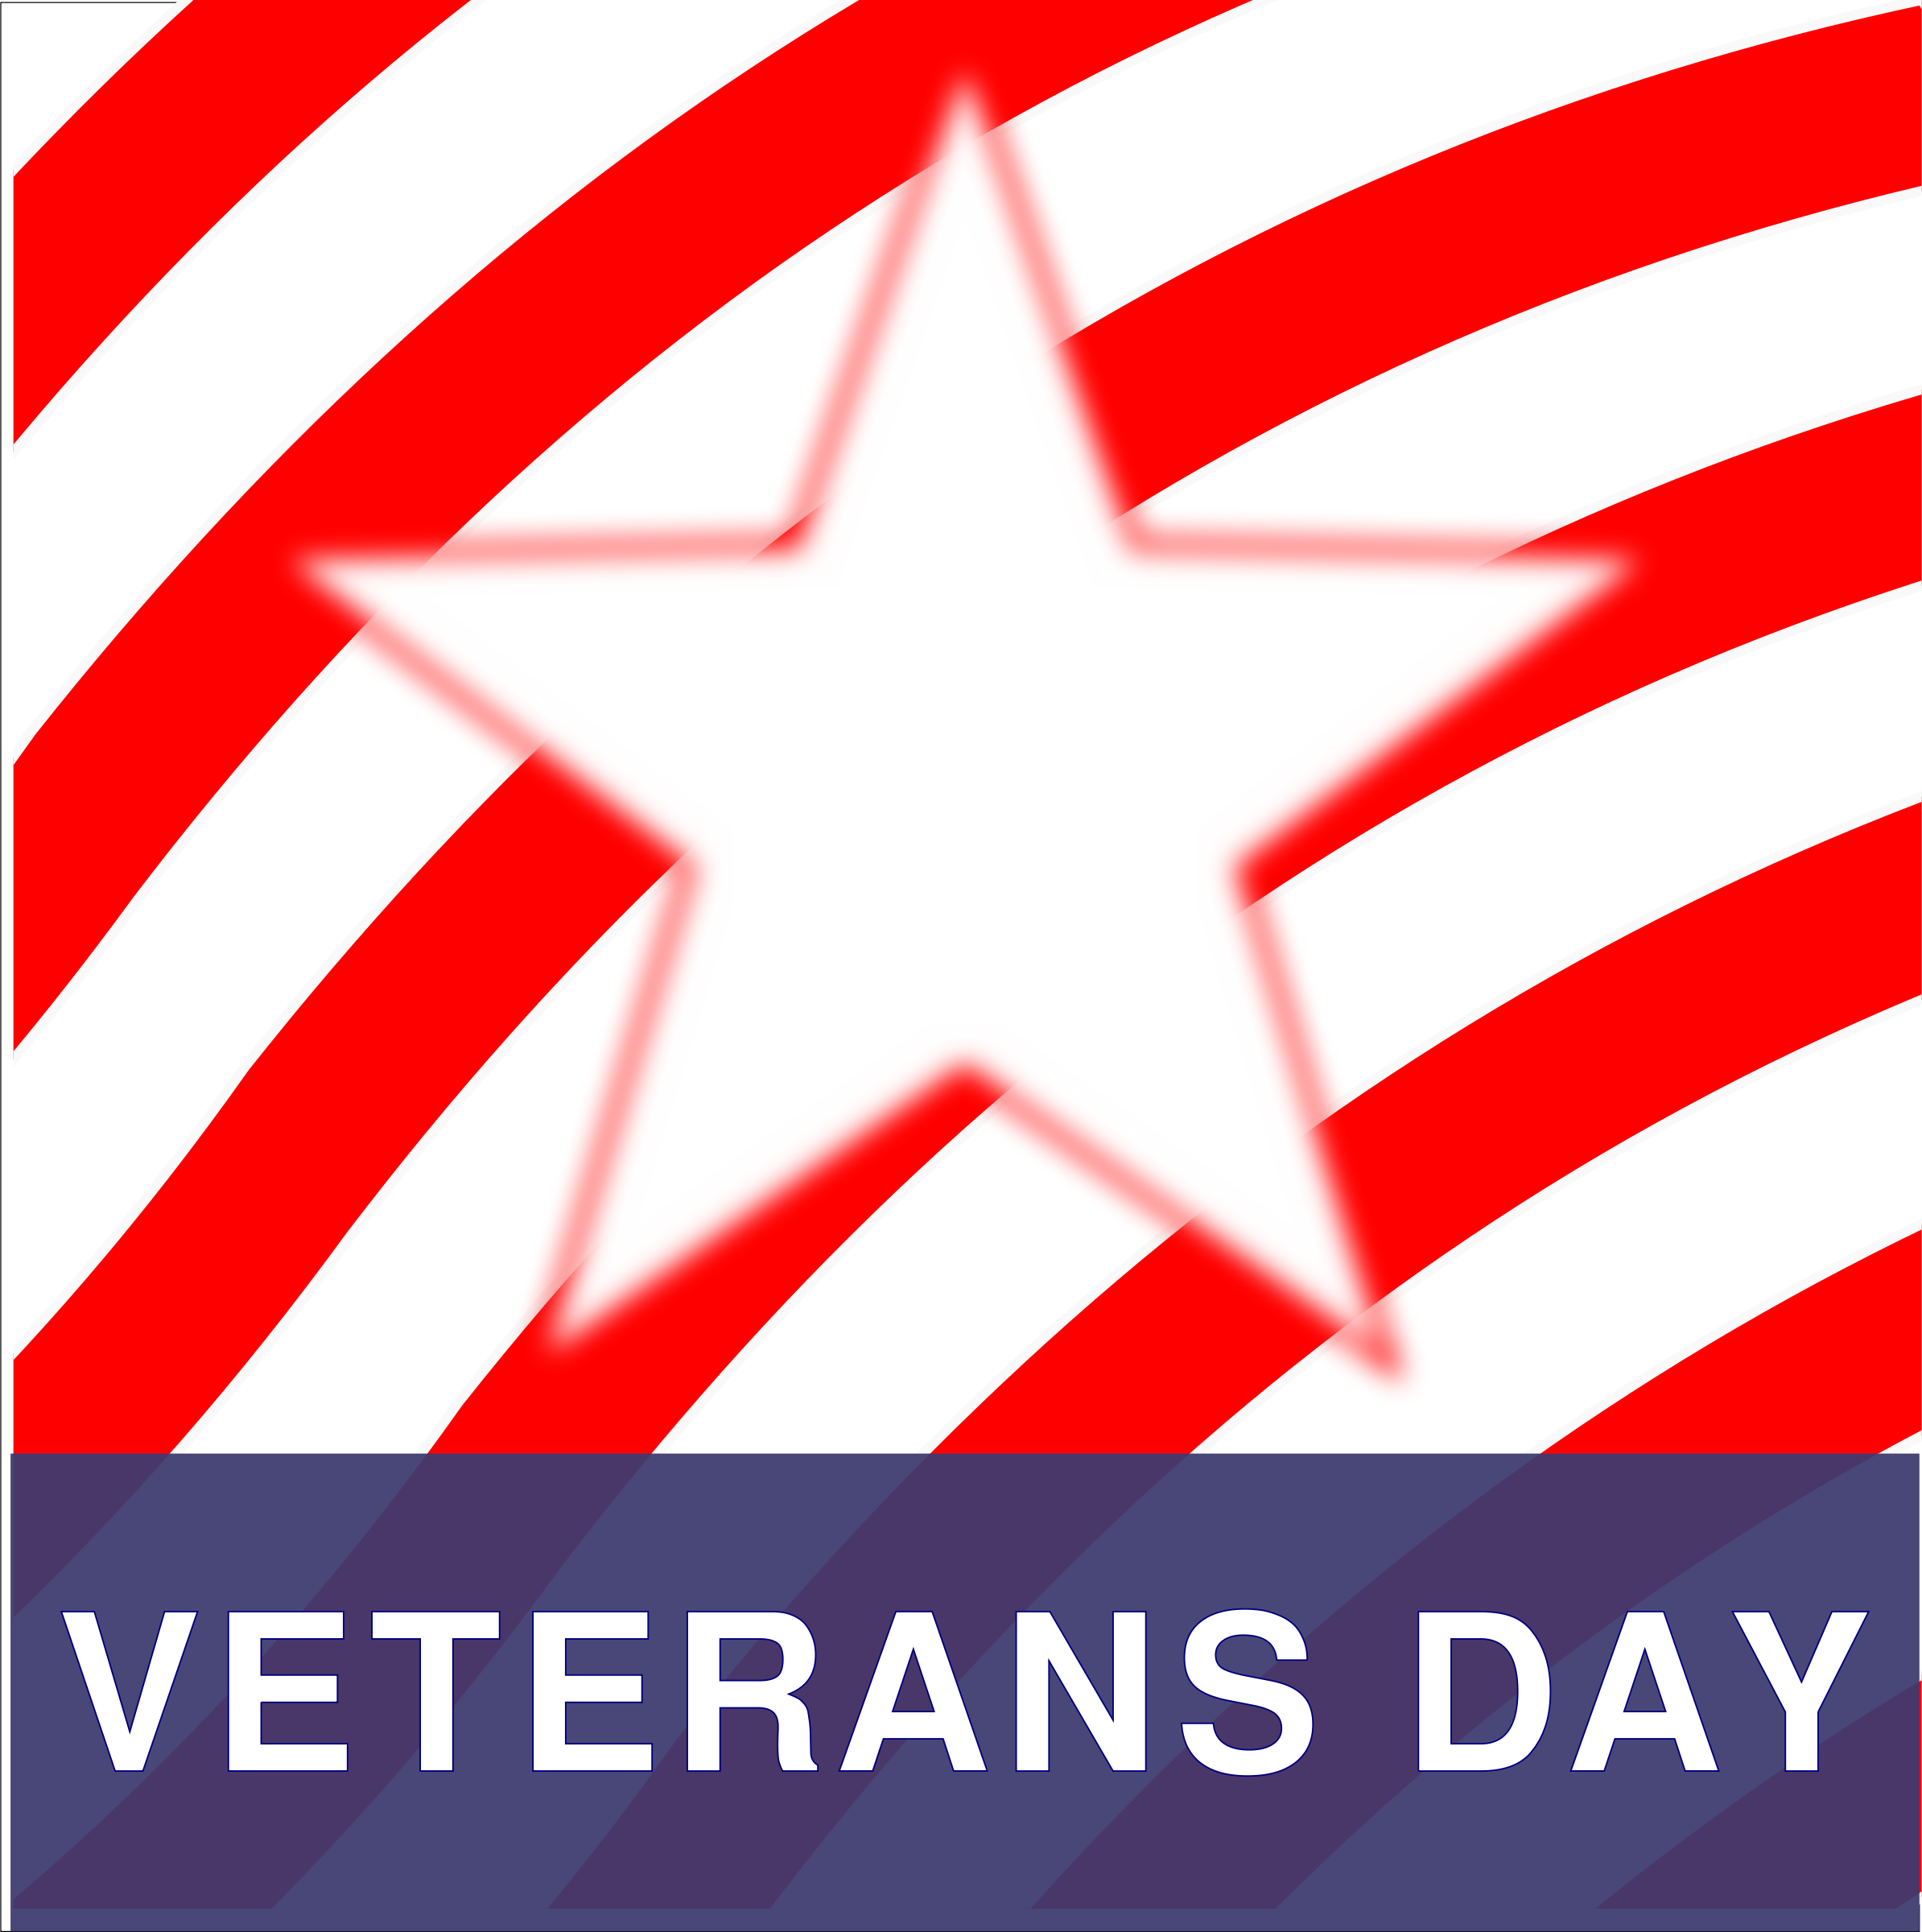 Veterans Day PNG - 54676